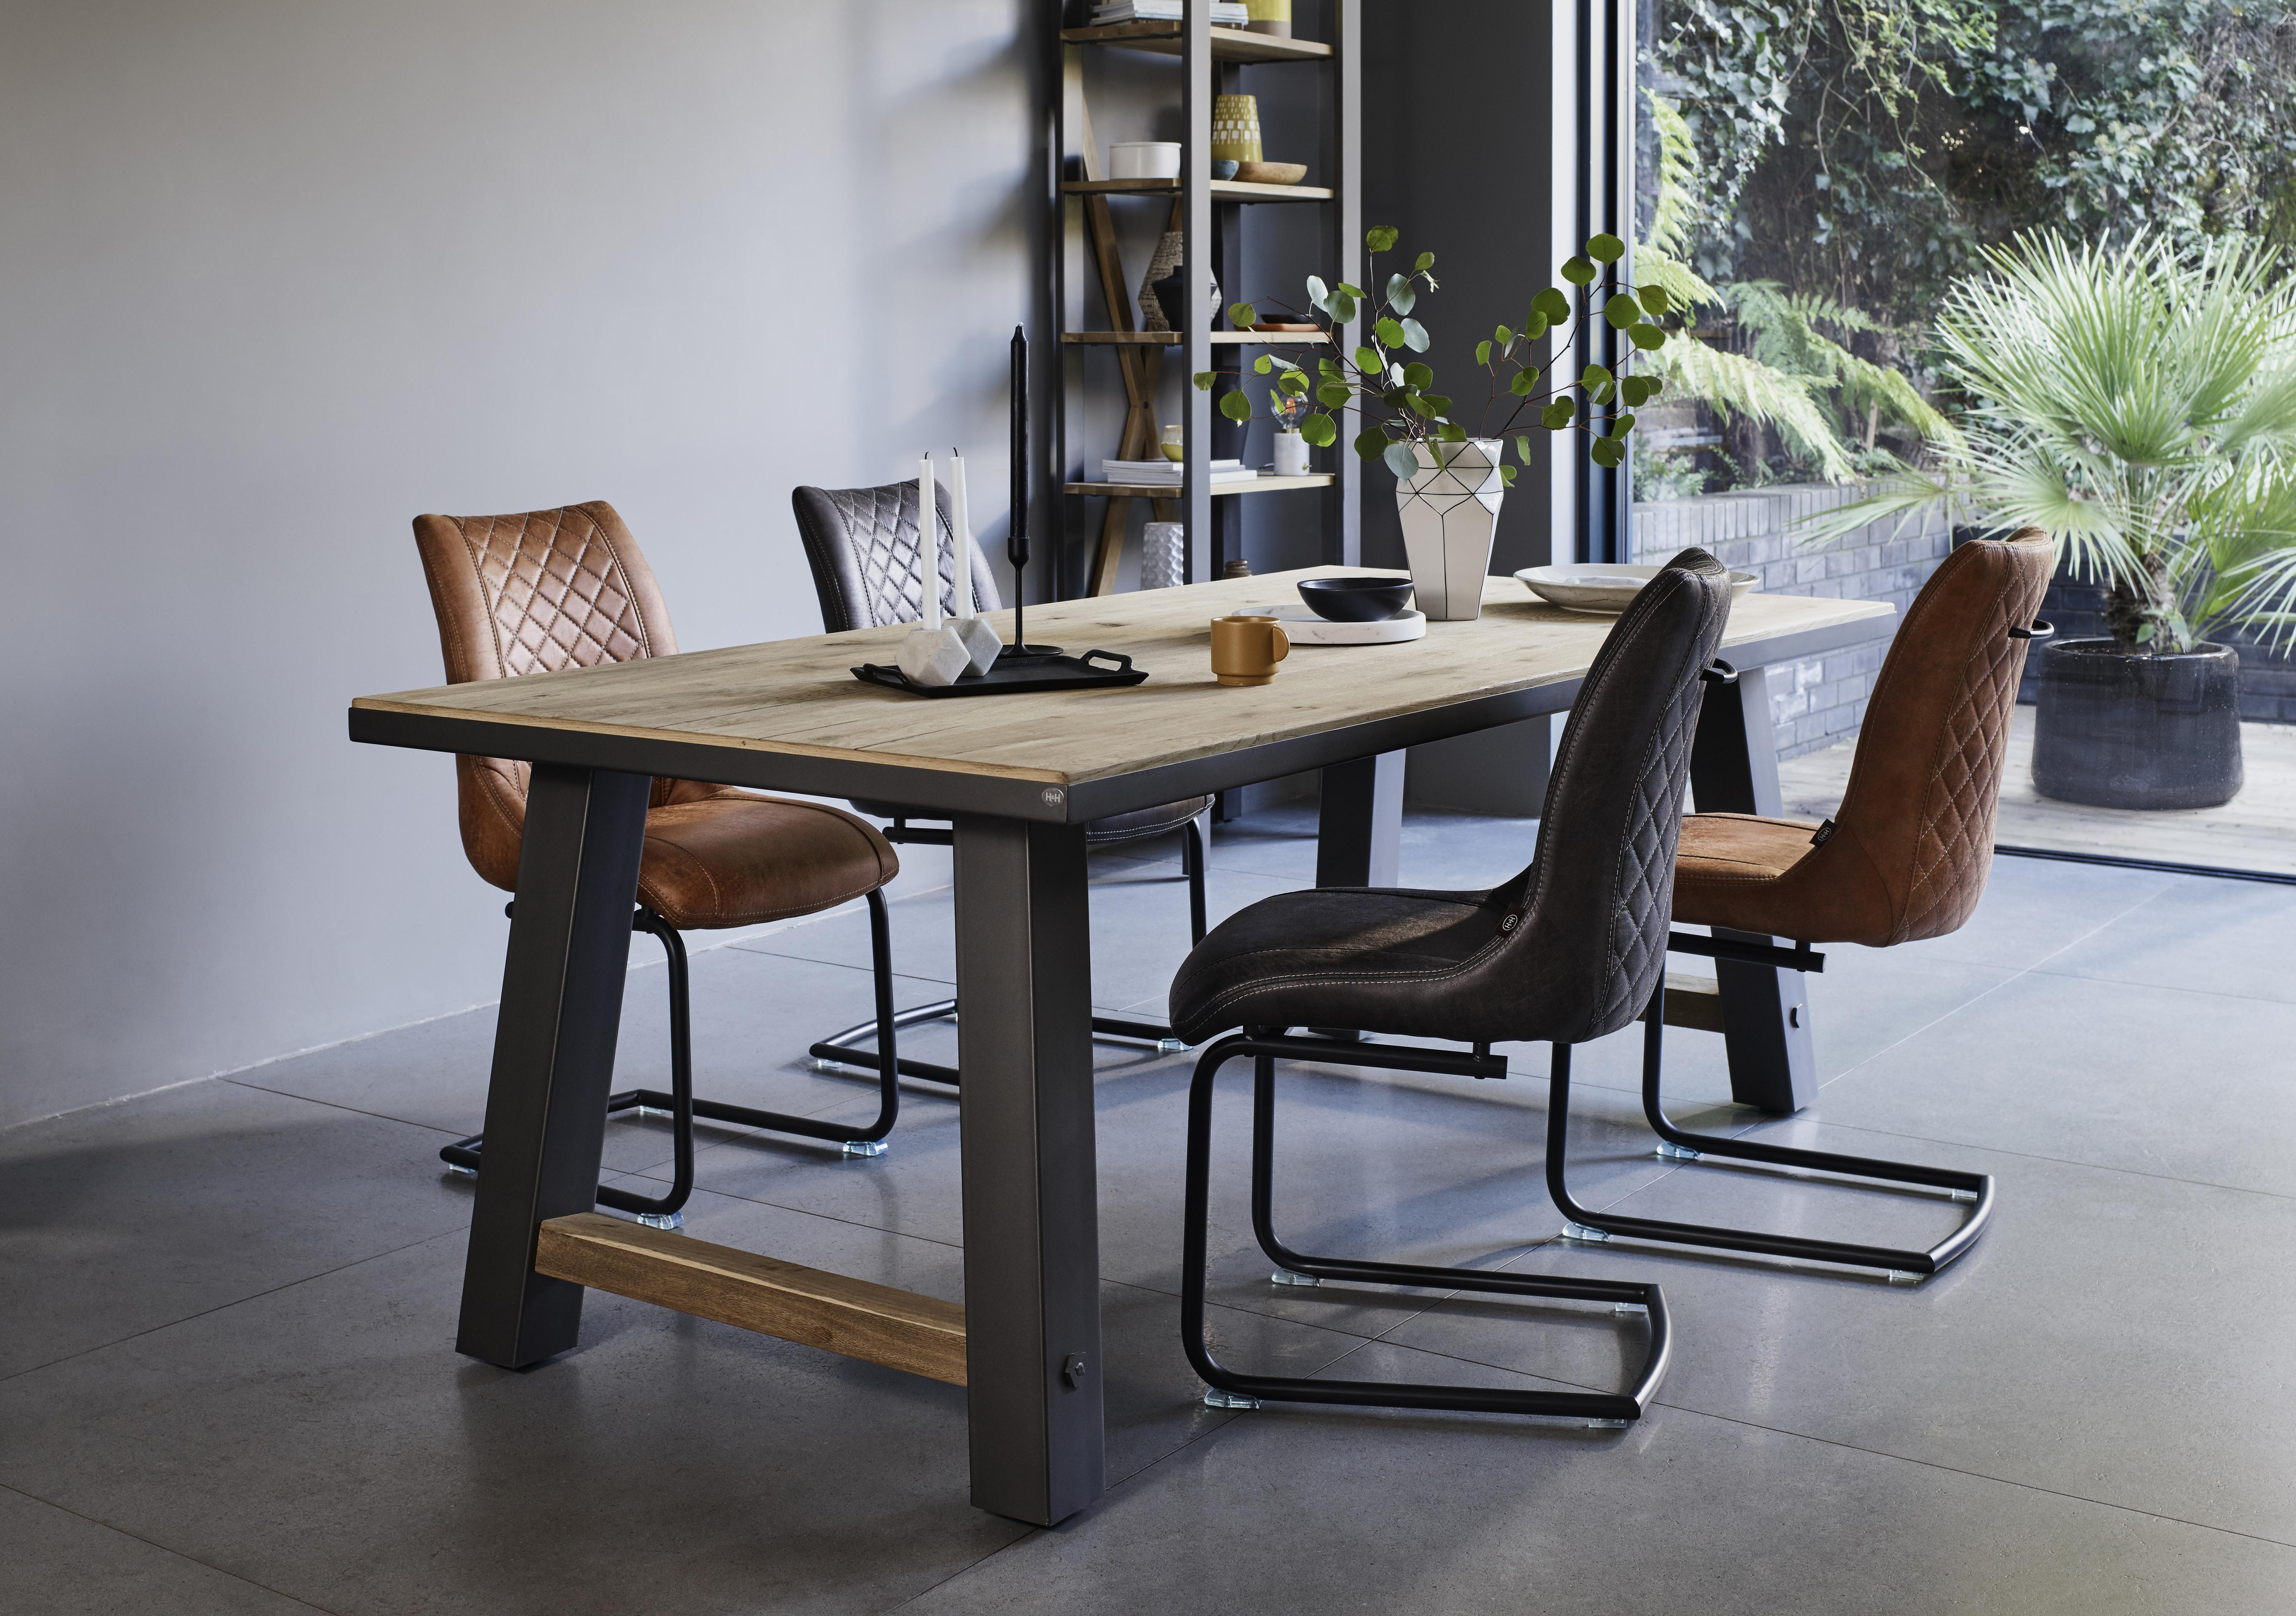 PRODZFRSP000000000036462_baltimore_table-4-chairs__lifestyle